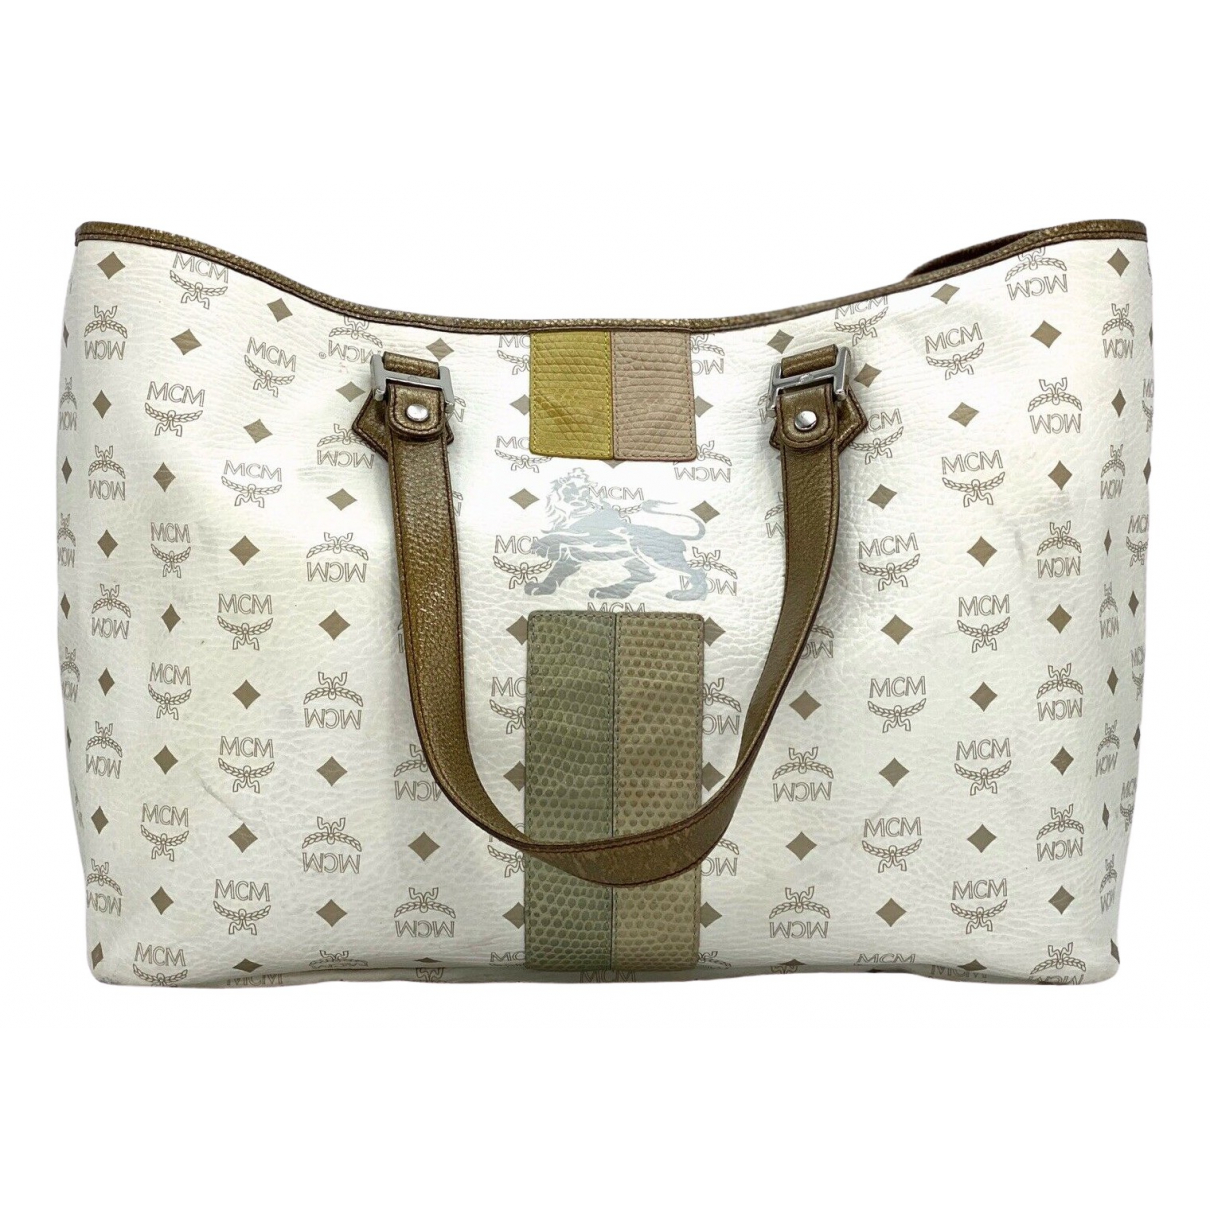 Mcm \N White Leather handbag for Women \N